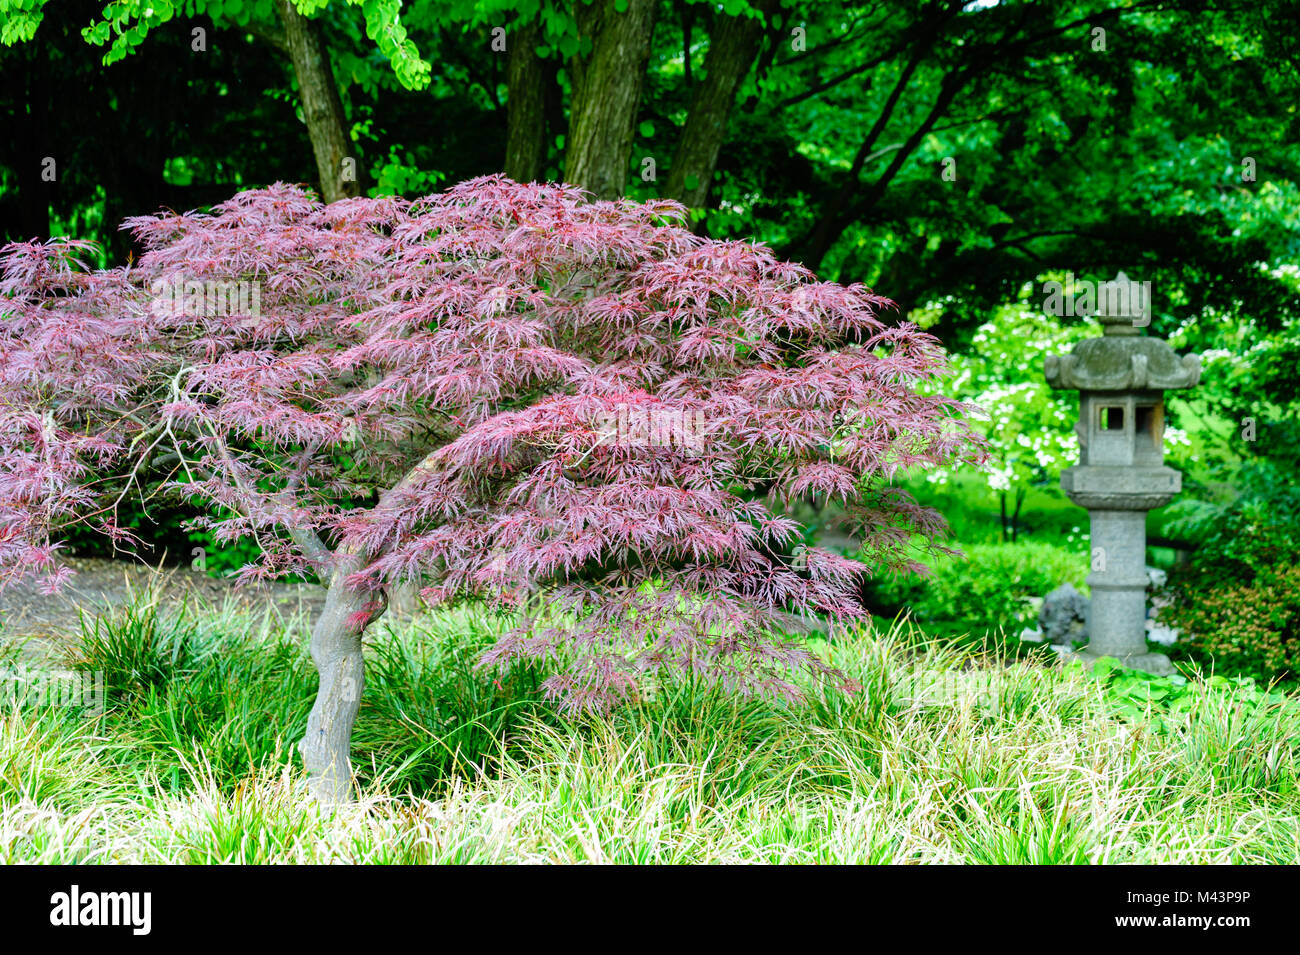 Red Maple in the park Planten un Blomen in Hamburg at daylight, selective focus. Stock Photo